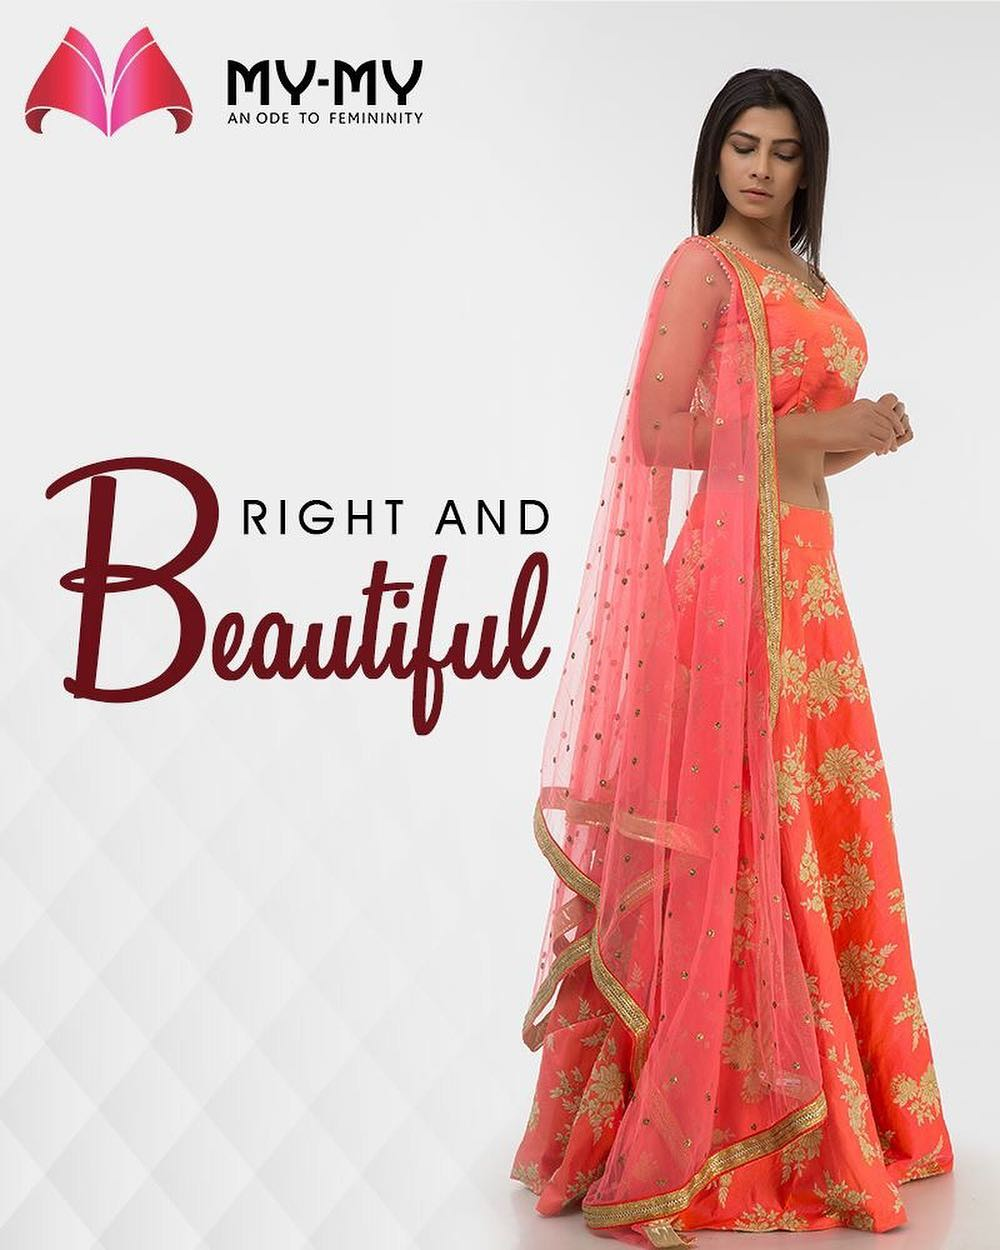 Are you ready to look graceful this #Rakhi? Here's what our outfits do for you!  #FemaleFashion #Style #SummerWardrobe #MyMy #MyMyAhmedabad #Fashion #Ahmedabad